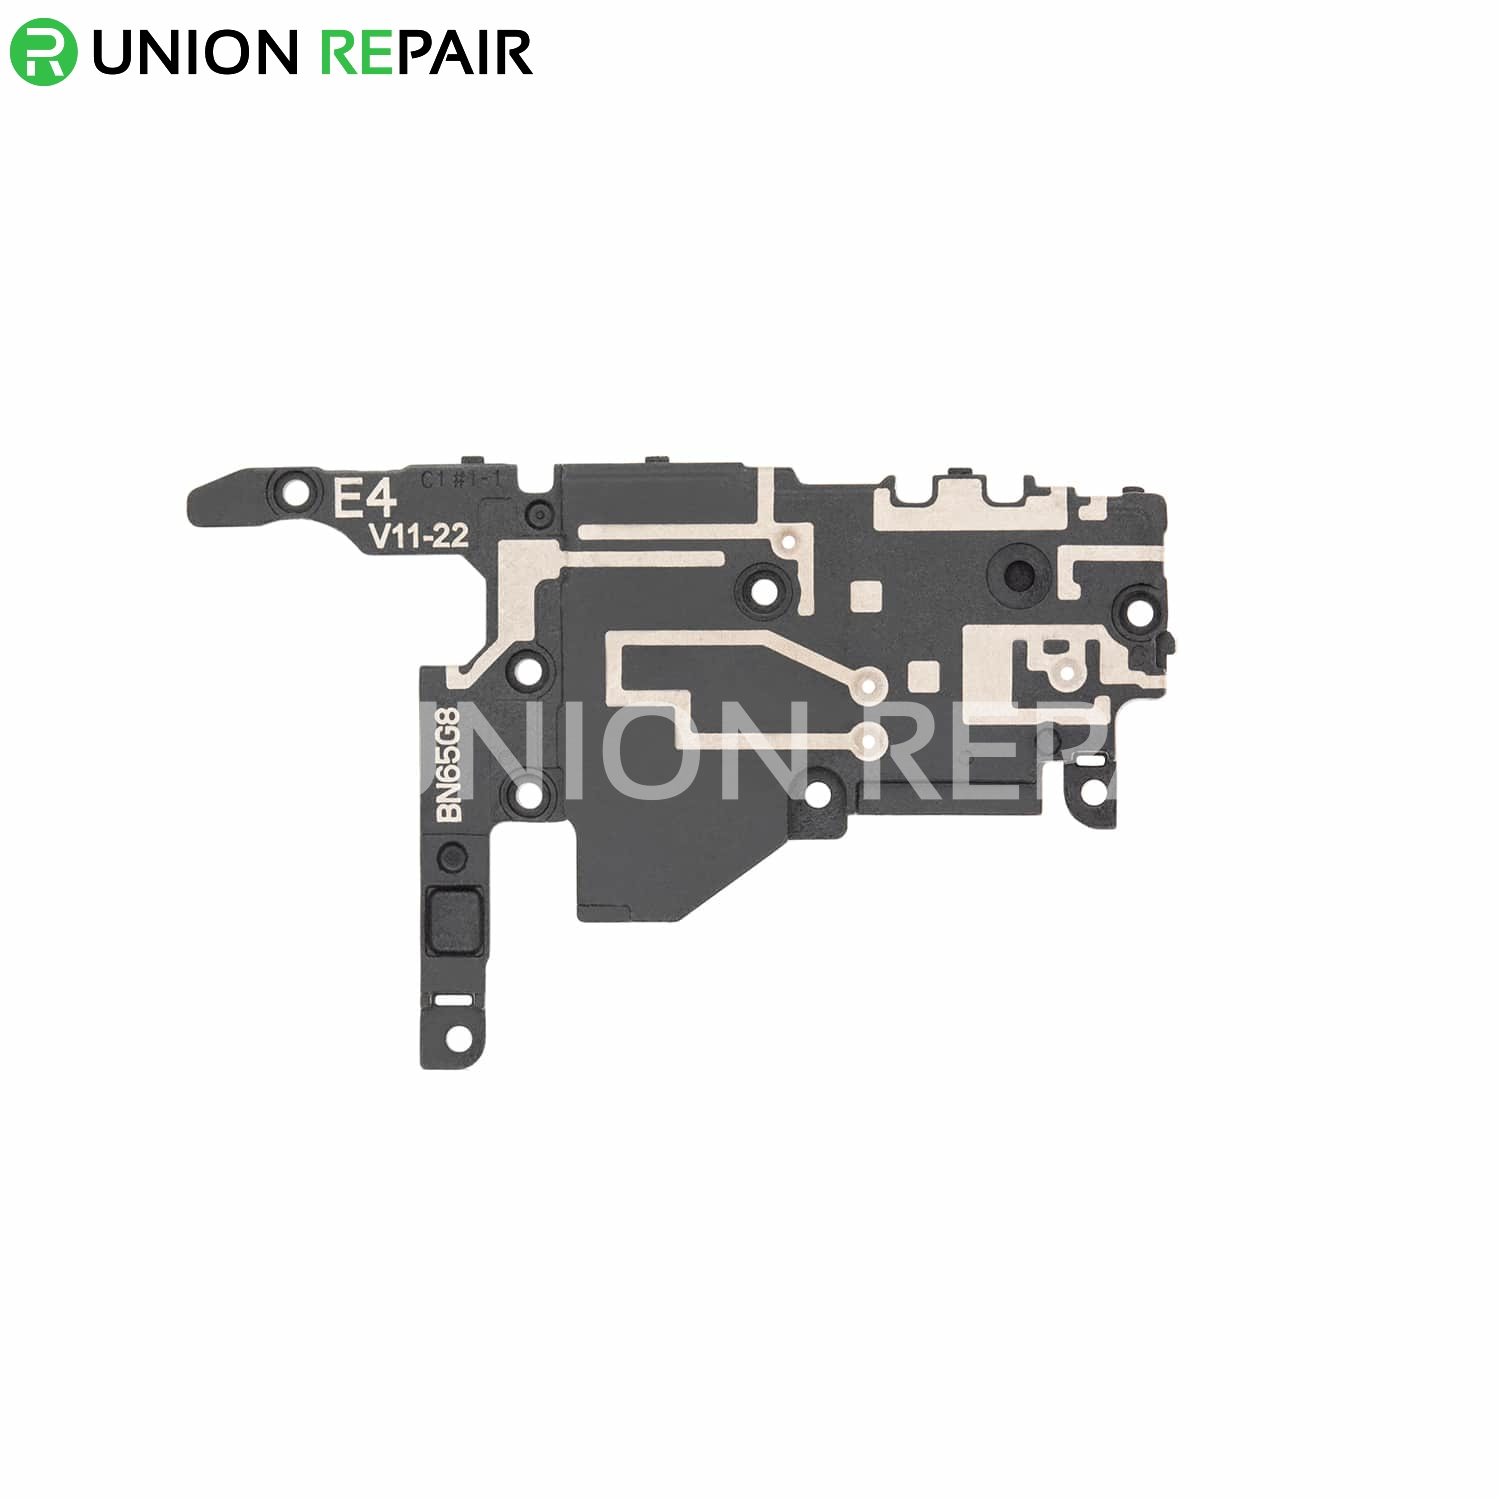 Replacement for Samsung Galaxy Note 20 SM-N981F Earpiece With Antenna Cover